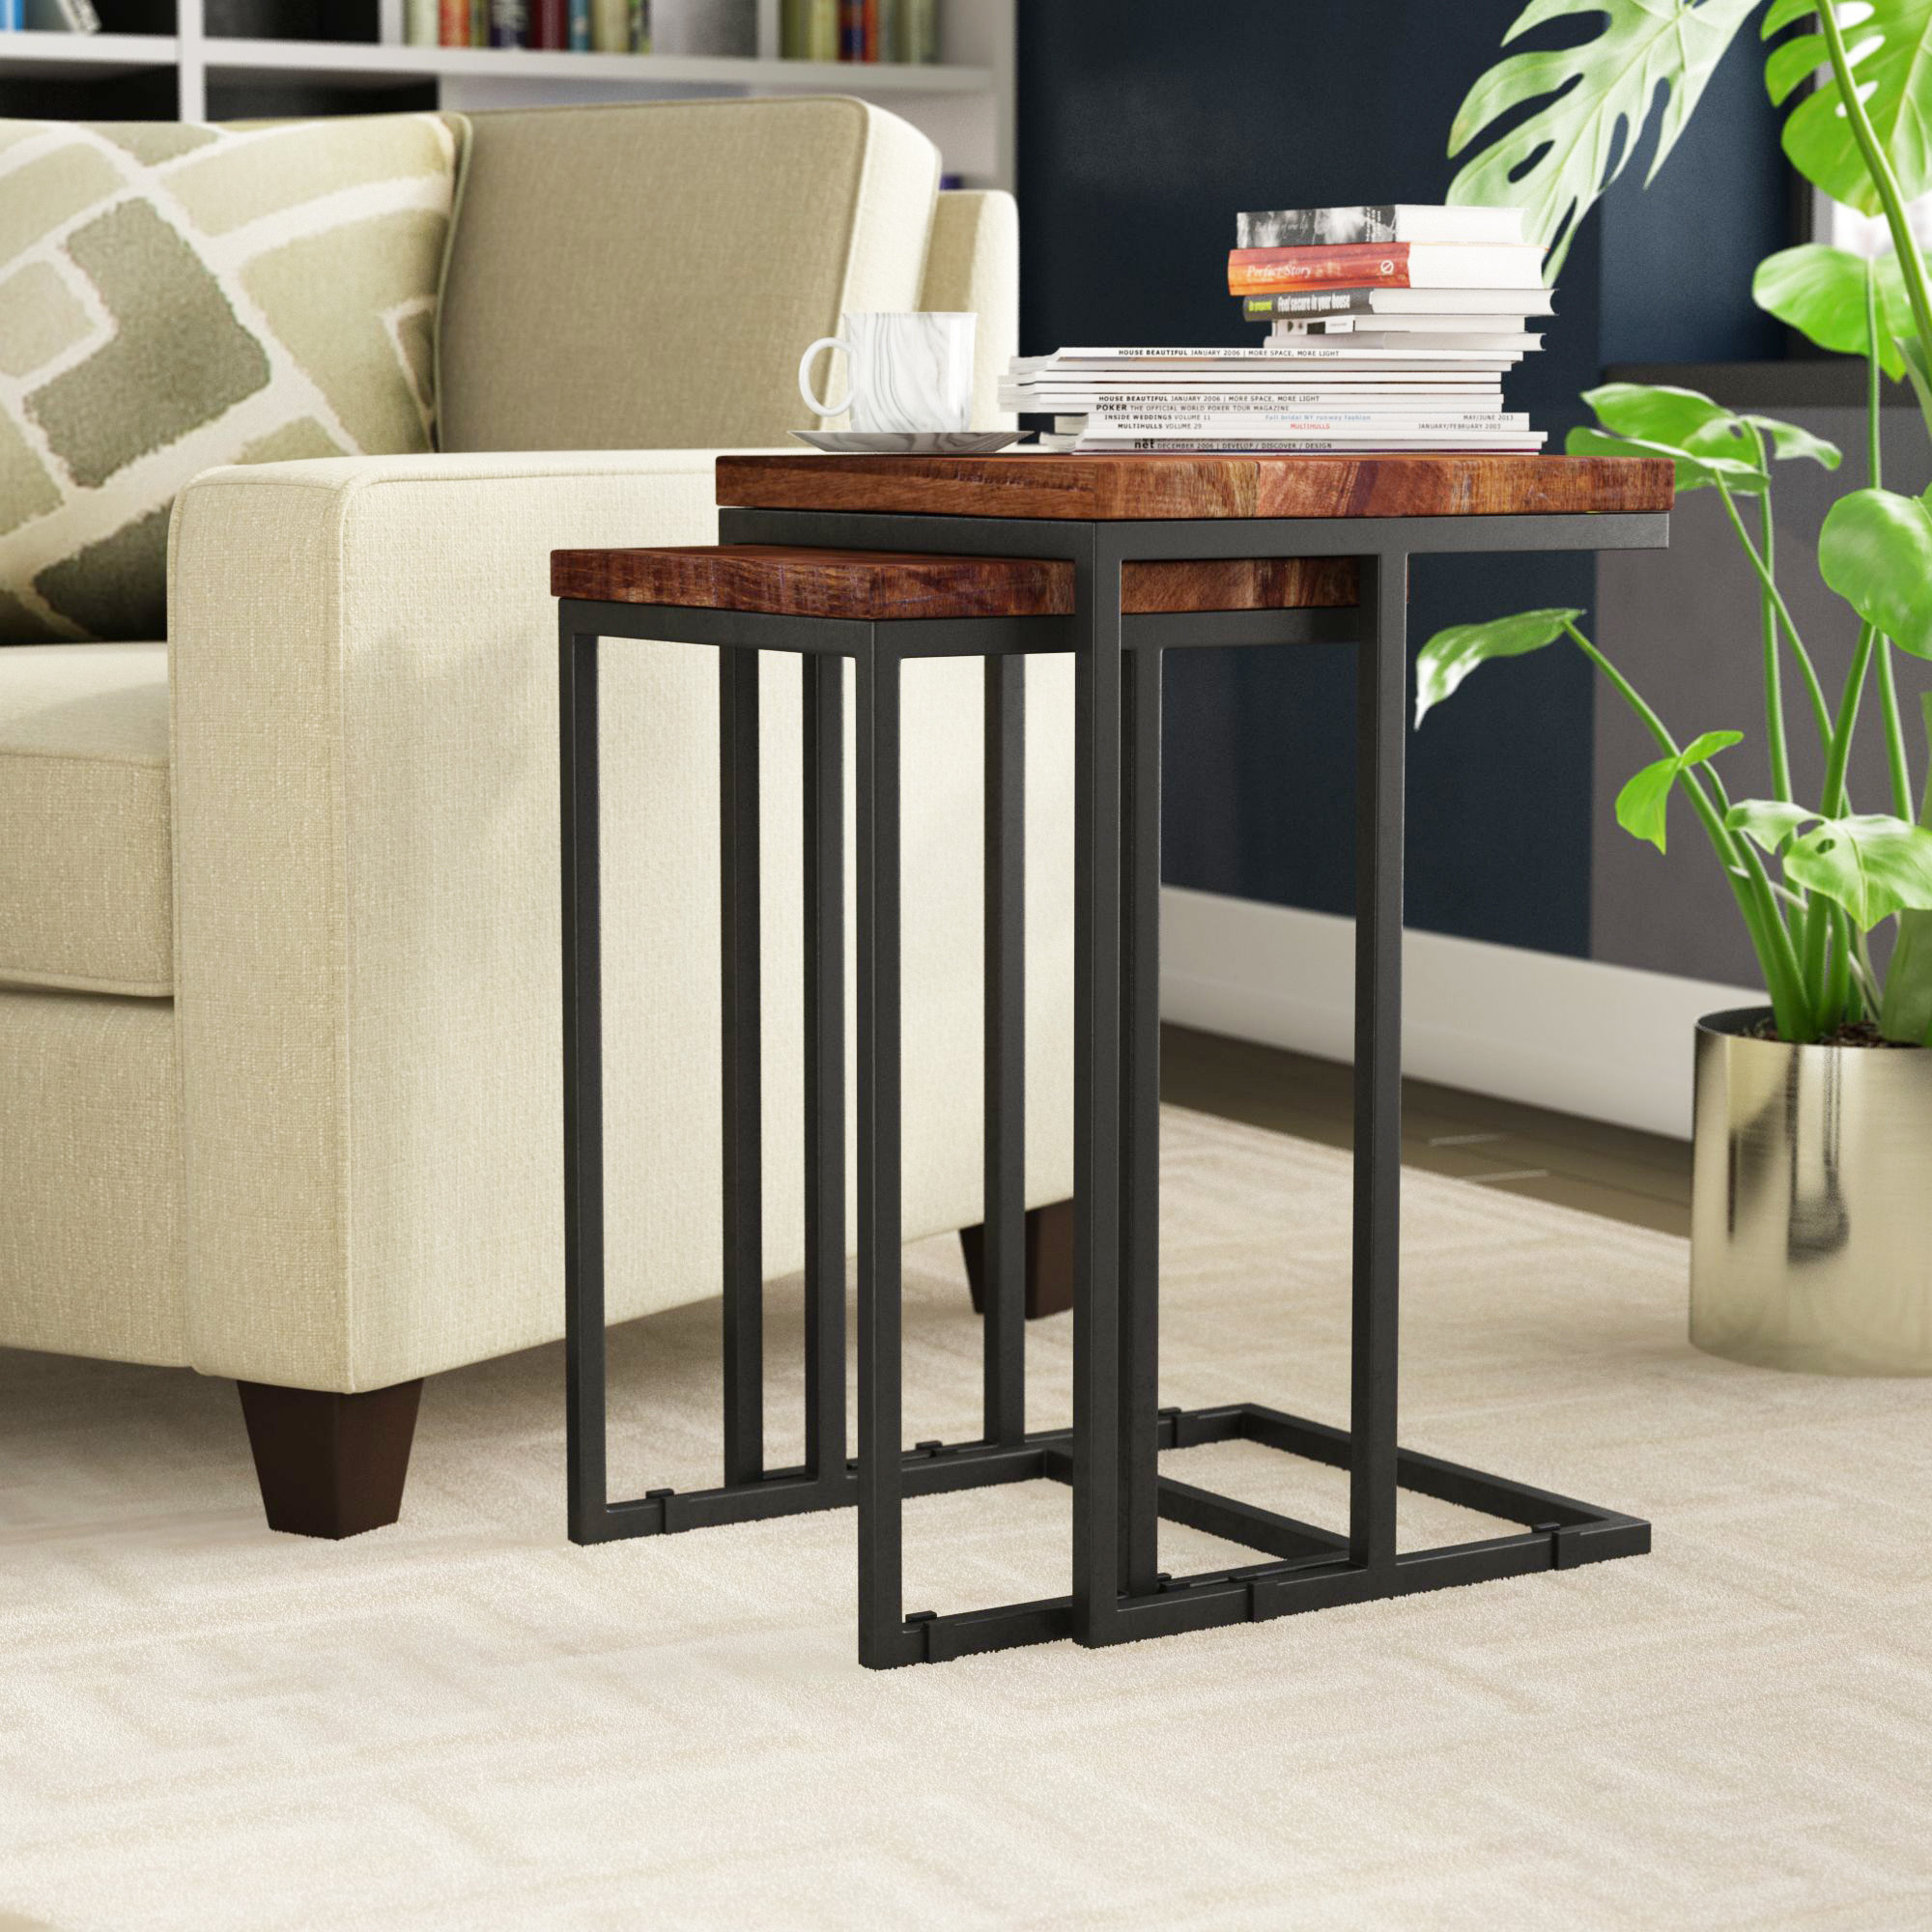 C Tables You'll Love | Wayfair Intended For Mix Leather Imprint Metal Frame Console Tables (View 23 of 30)